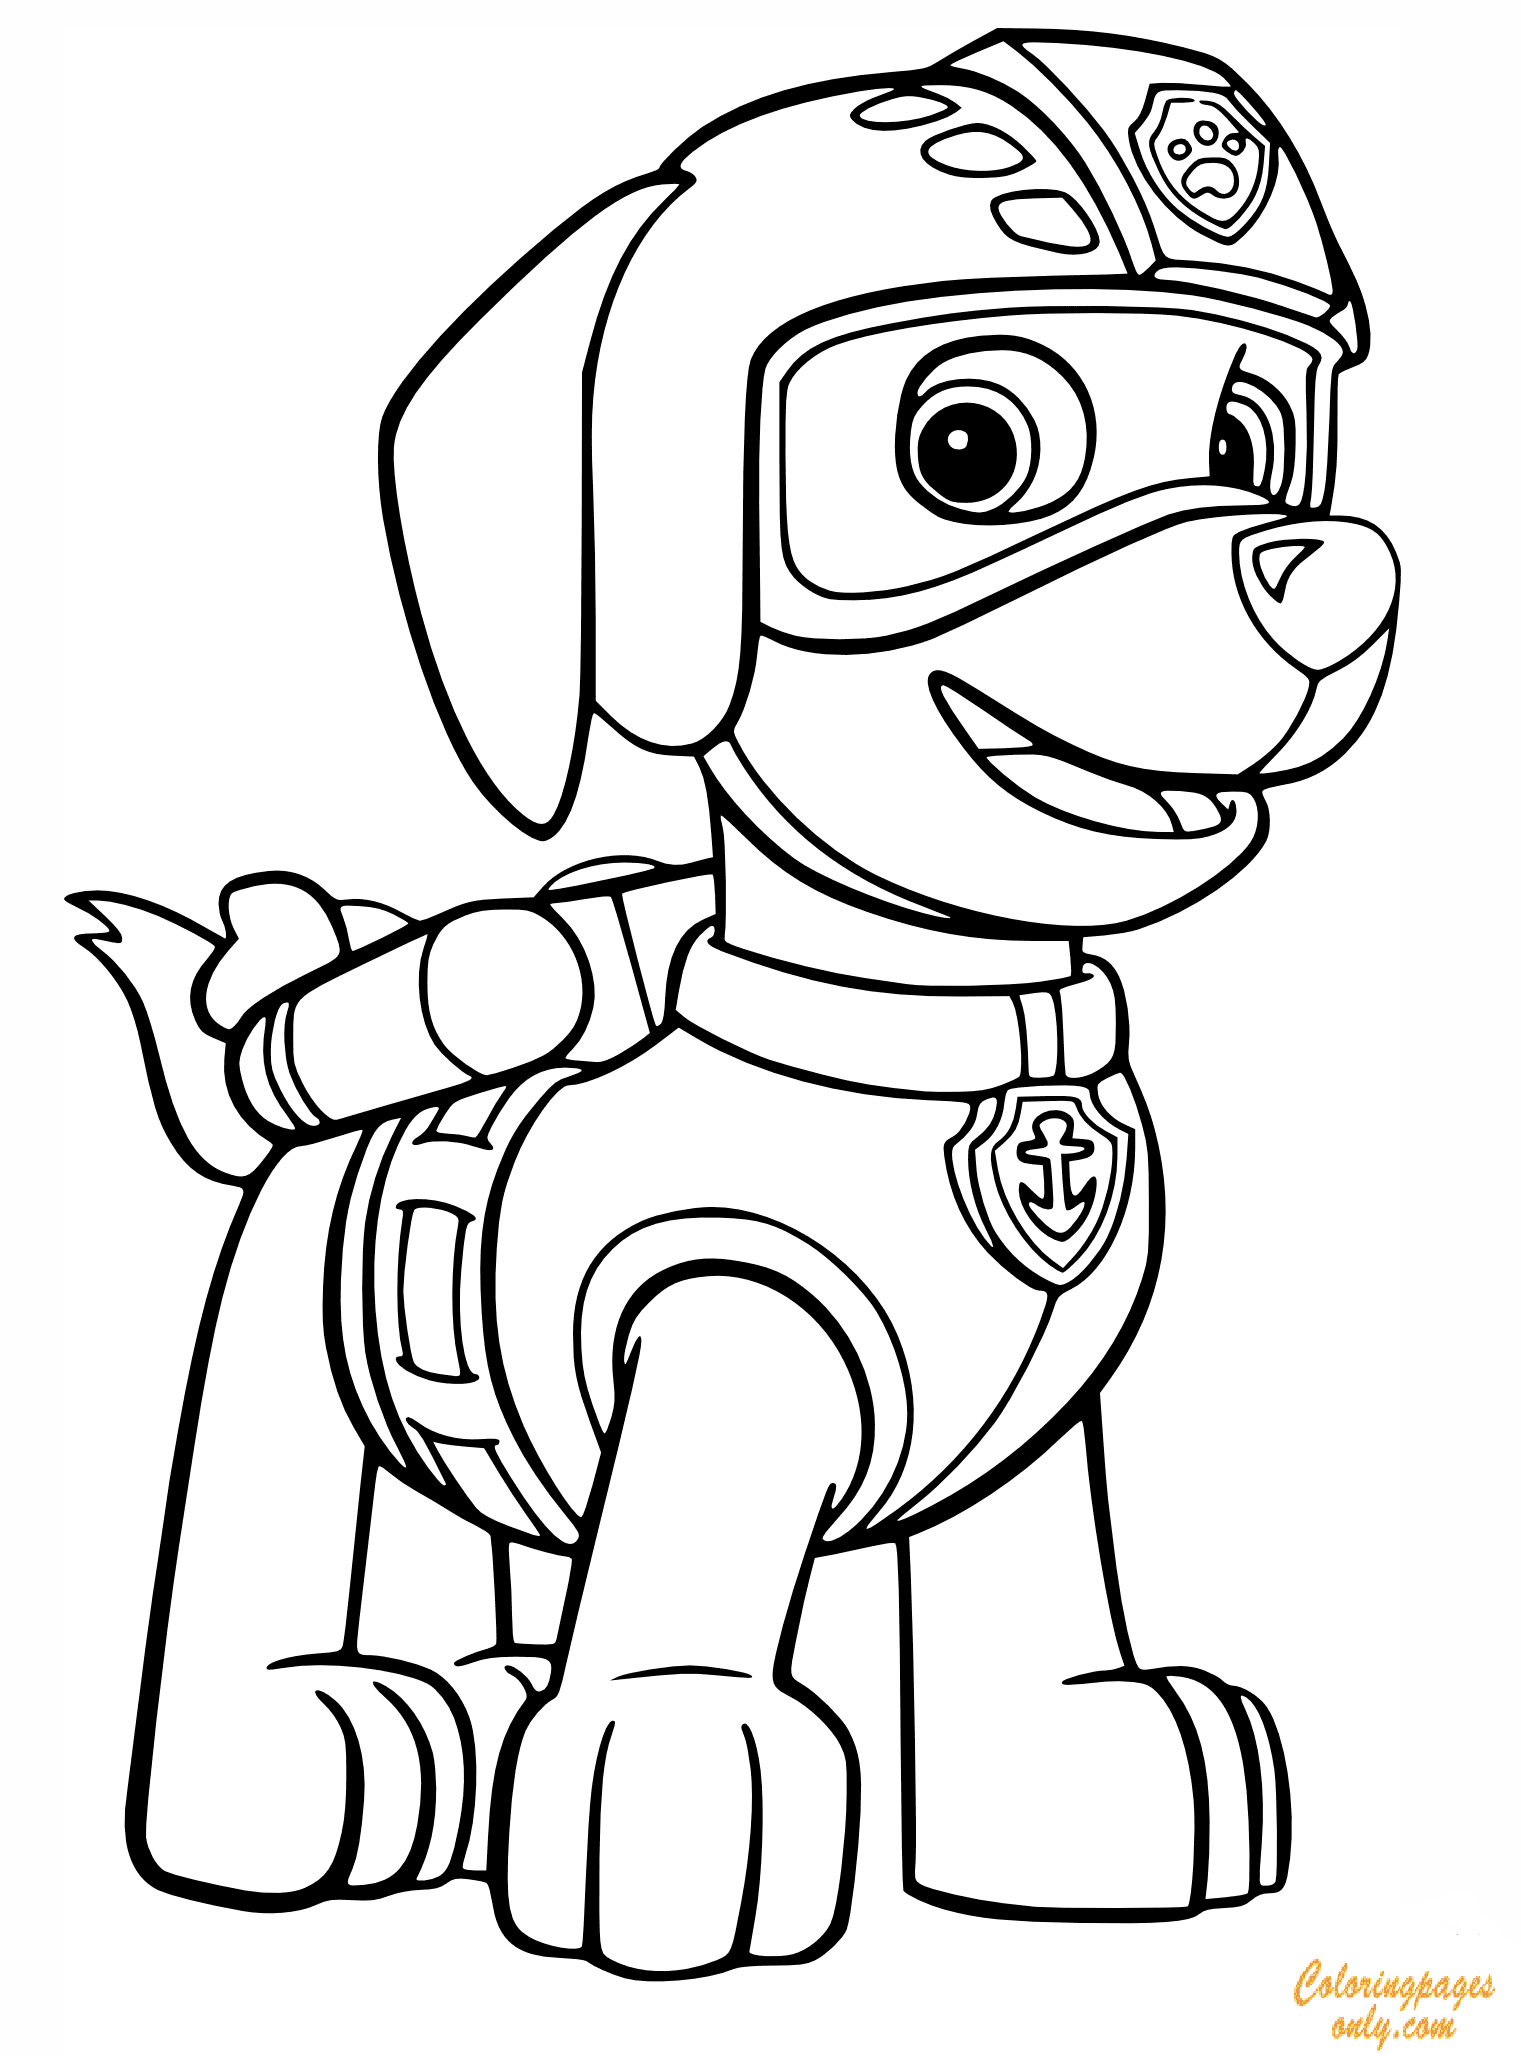 Zuma's Rescue Outfit Coloring Page